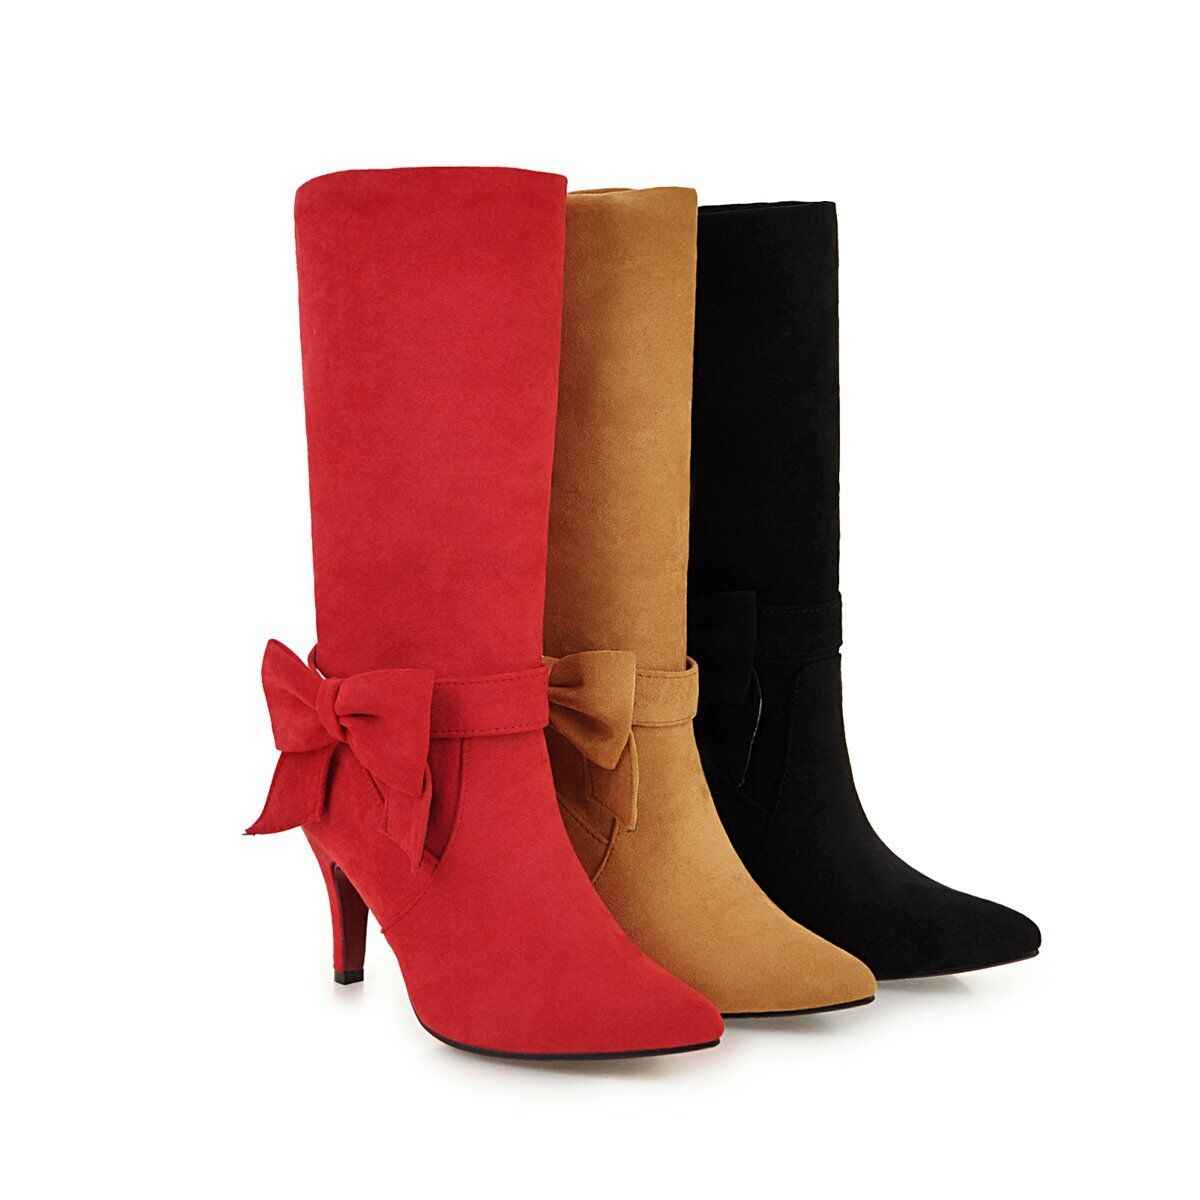 Women's Suede Fabric Pointed shoes Bowknot High Heel Mid-Calf Boots US Sz 412.5